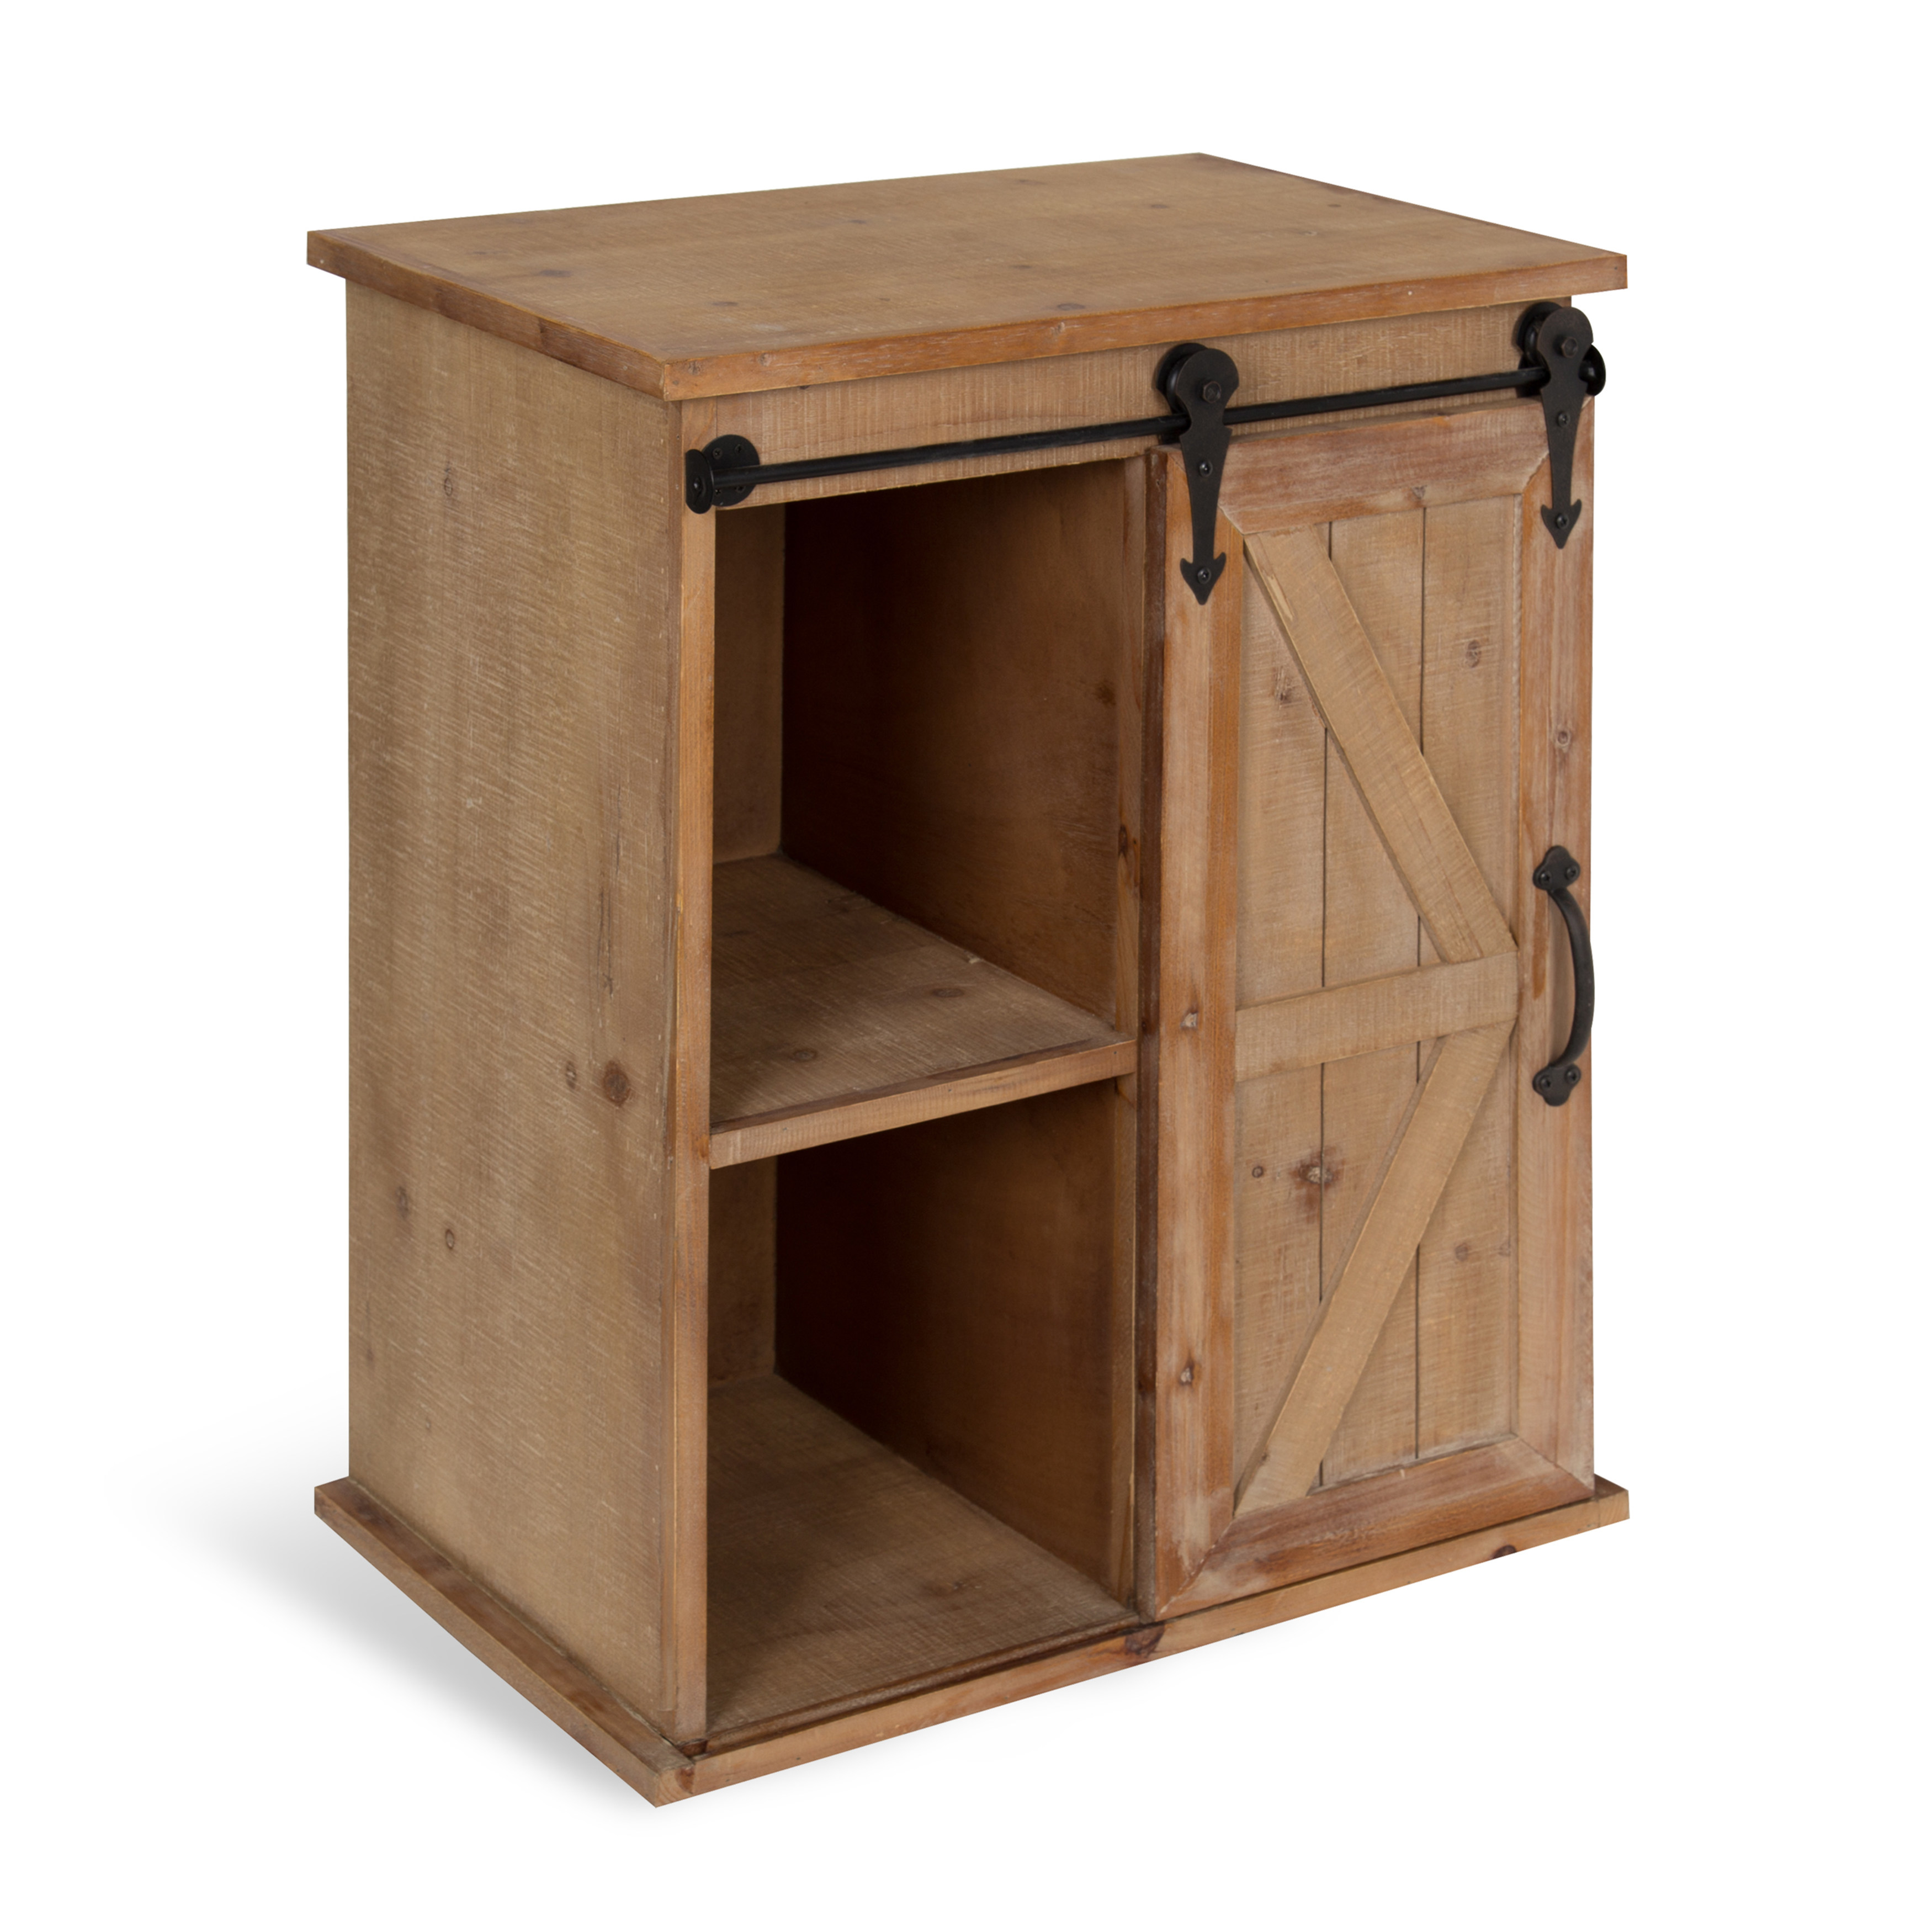 kate and laurel cates wooden freestanding storage cabinet side accent table with sliding barn door rustic brown finish rose gold designs designer round tablecloths living room